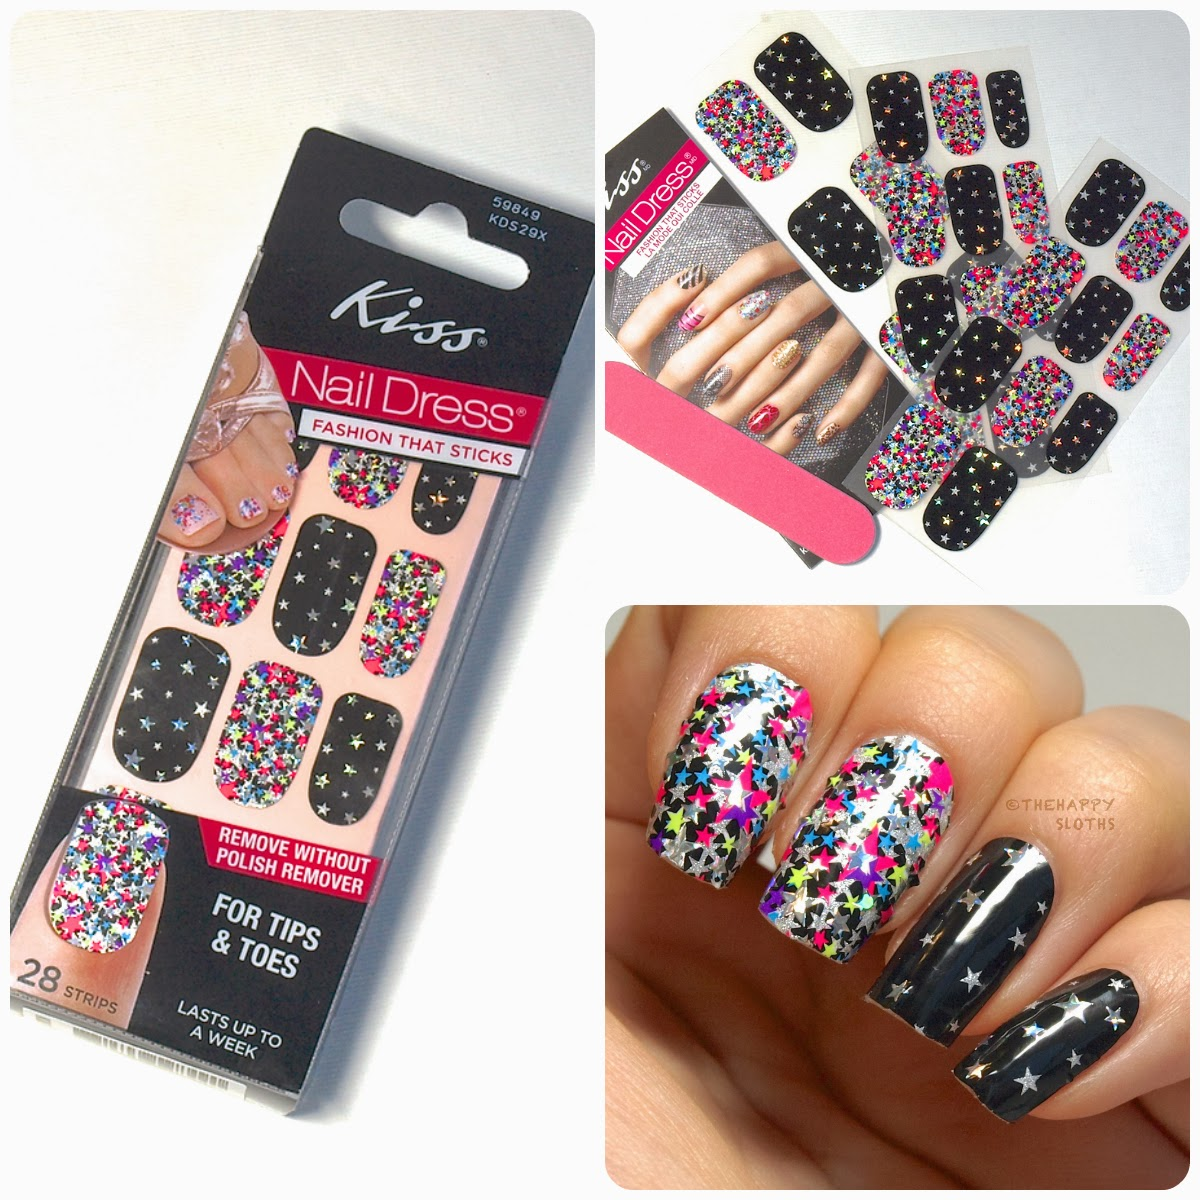 Kiss Nail Dress Strips Review And Swatches